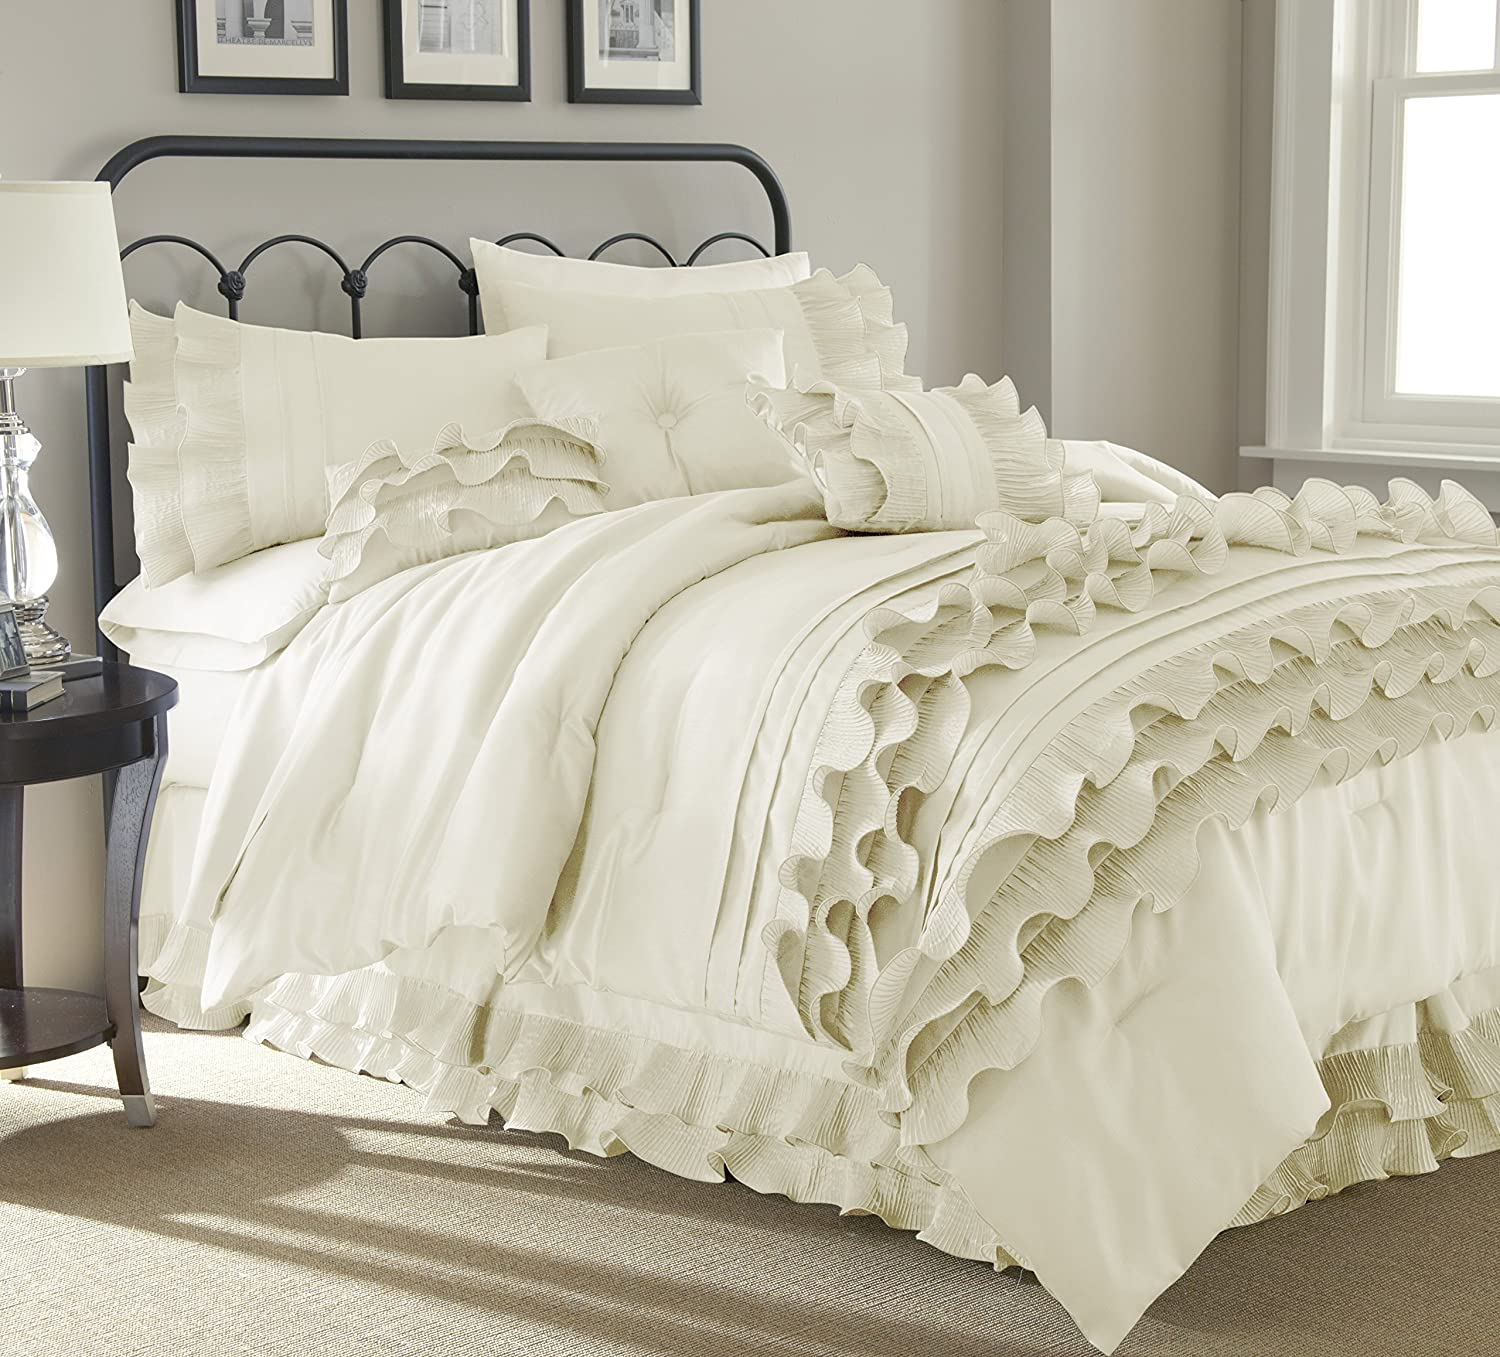 grey floral files stunning fab style uncategorized california bedding white king set trend for and sets comforter most cream